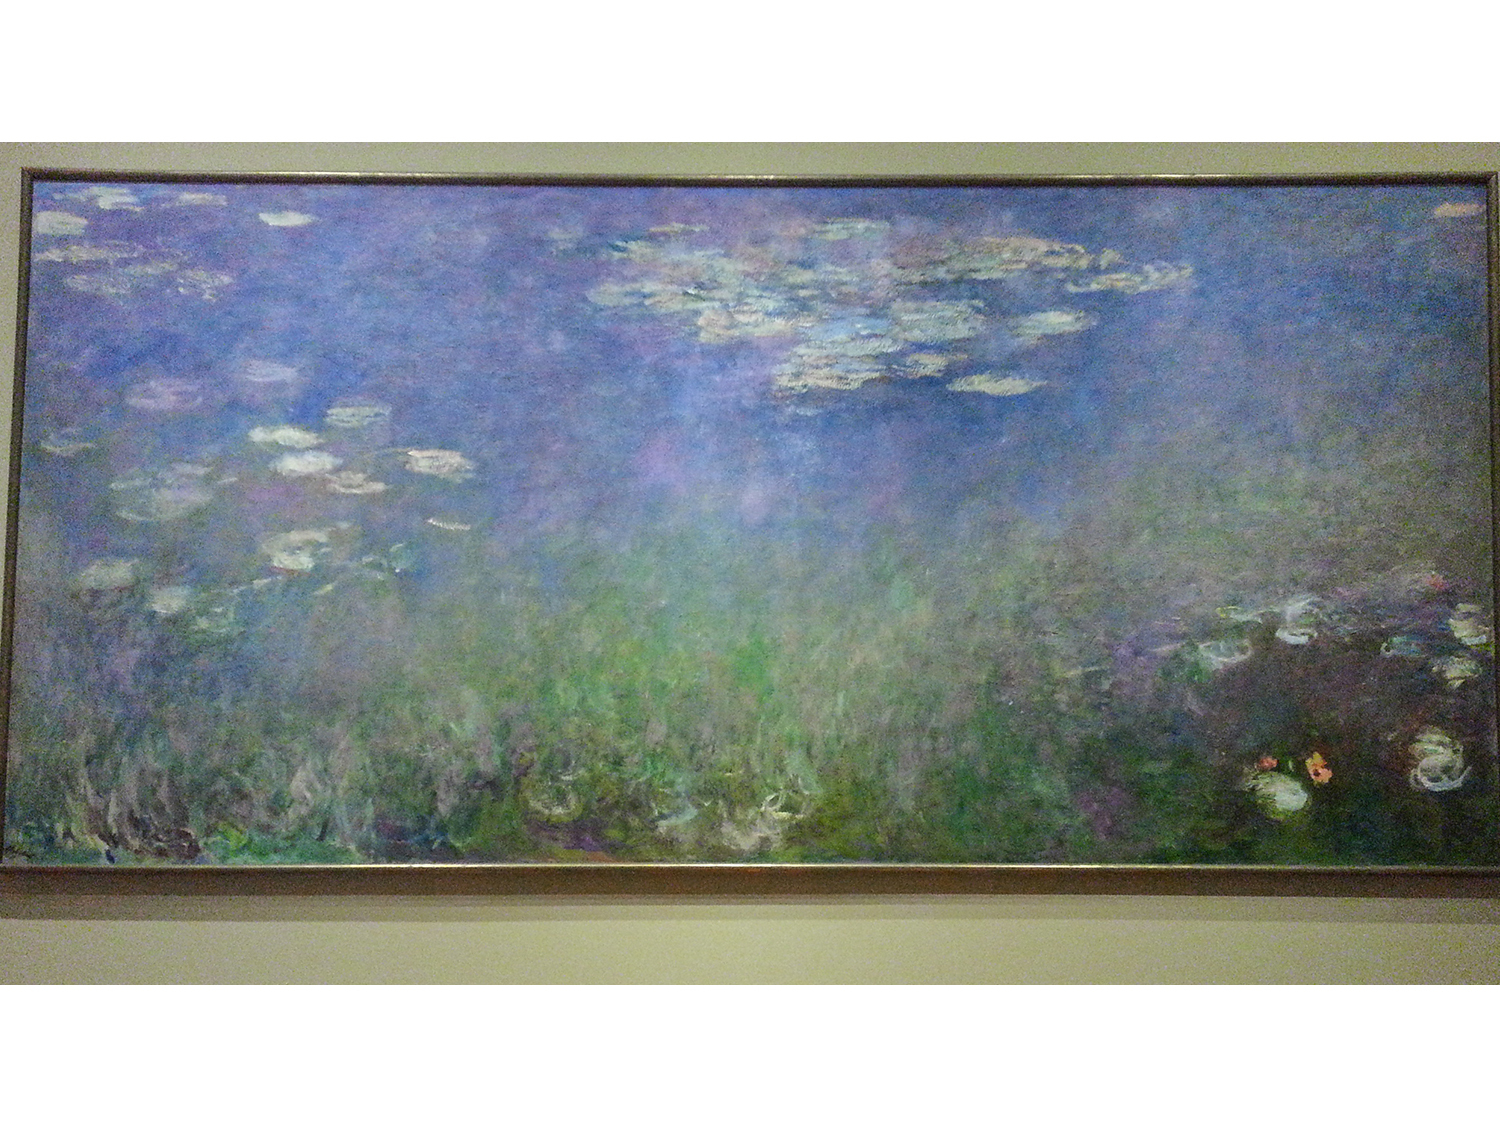 Claude Monet, Water Lilies, 1914-26